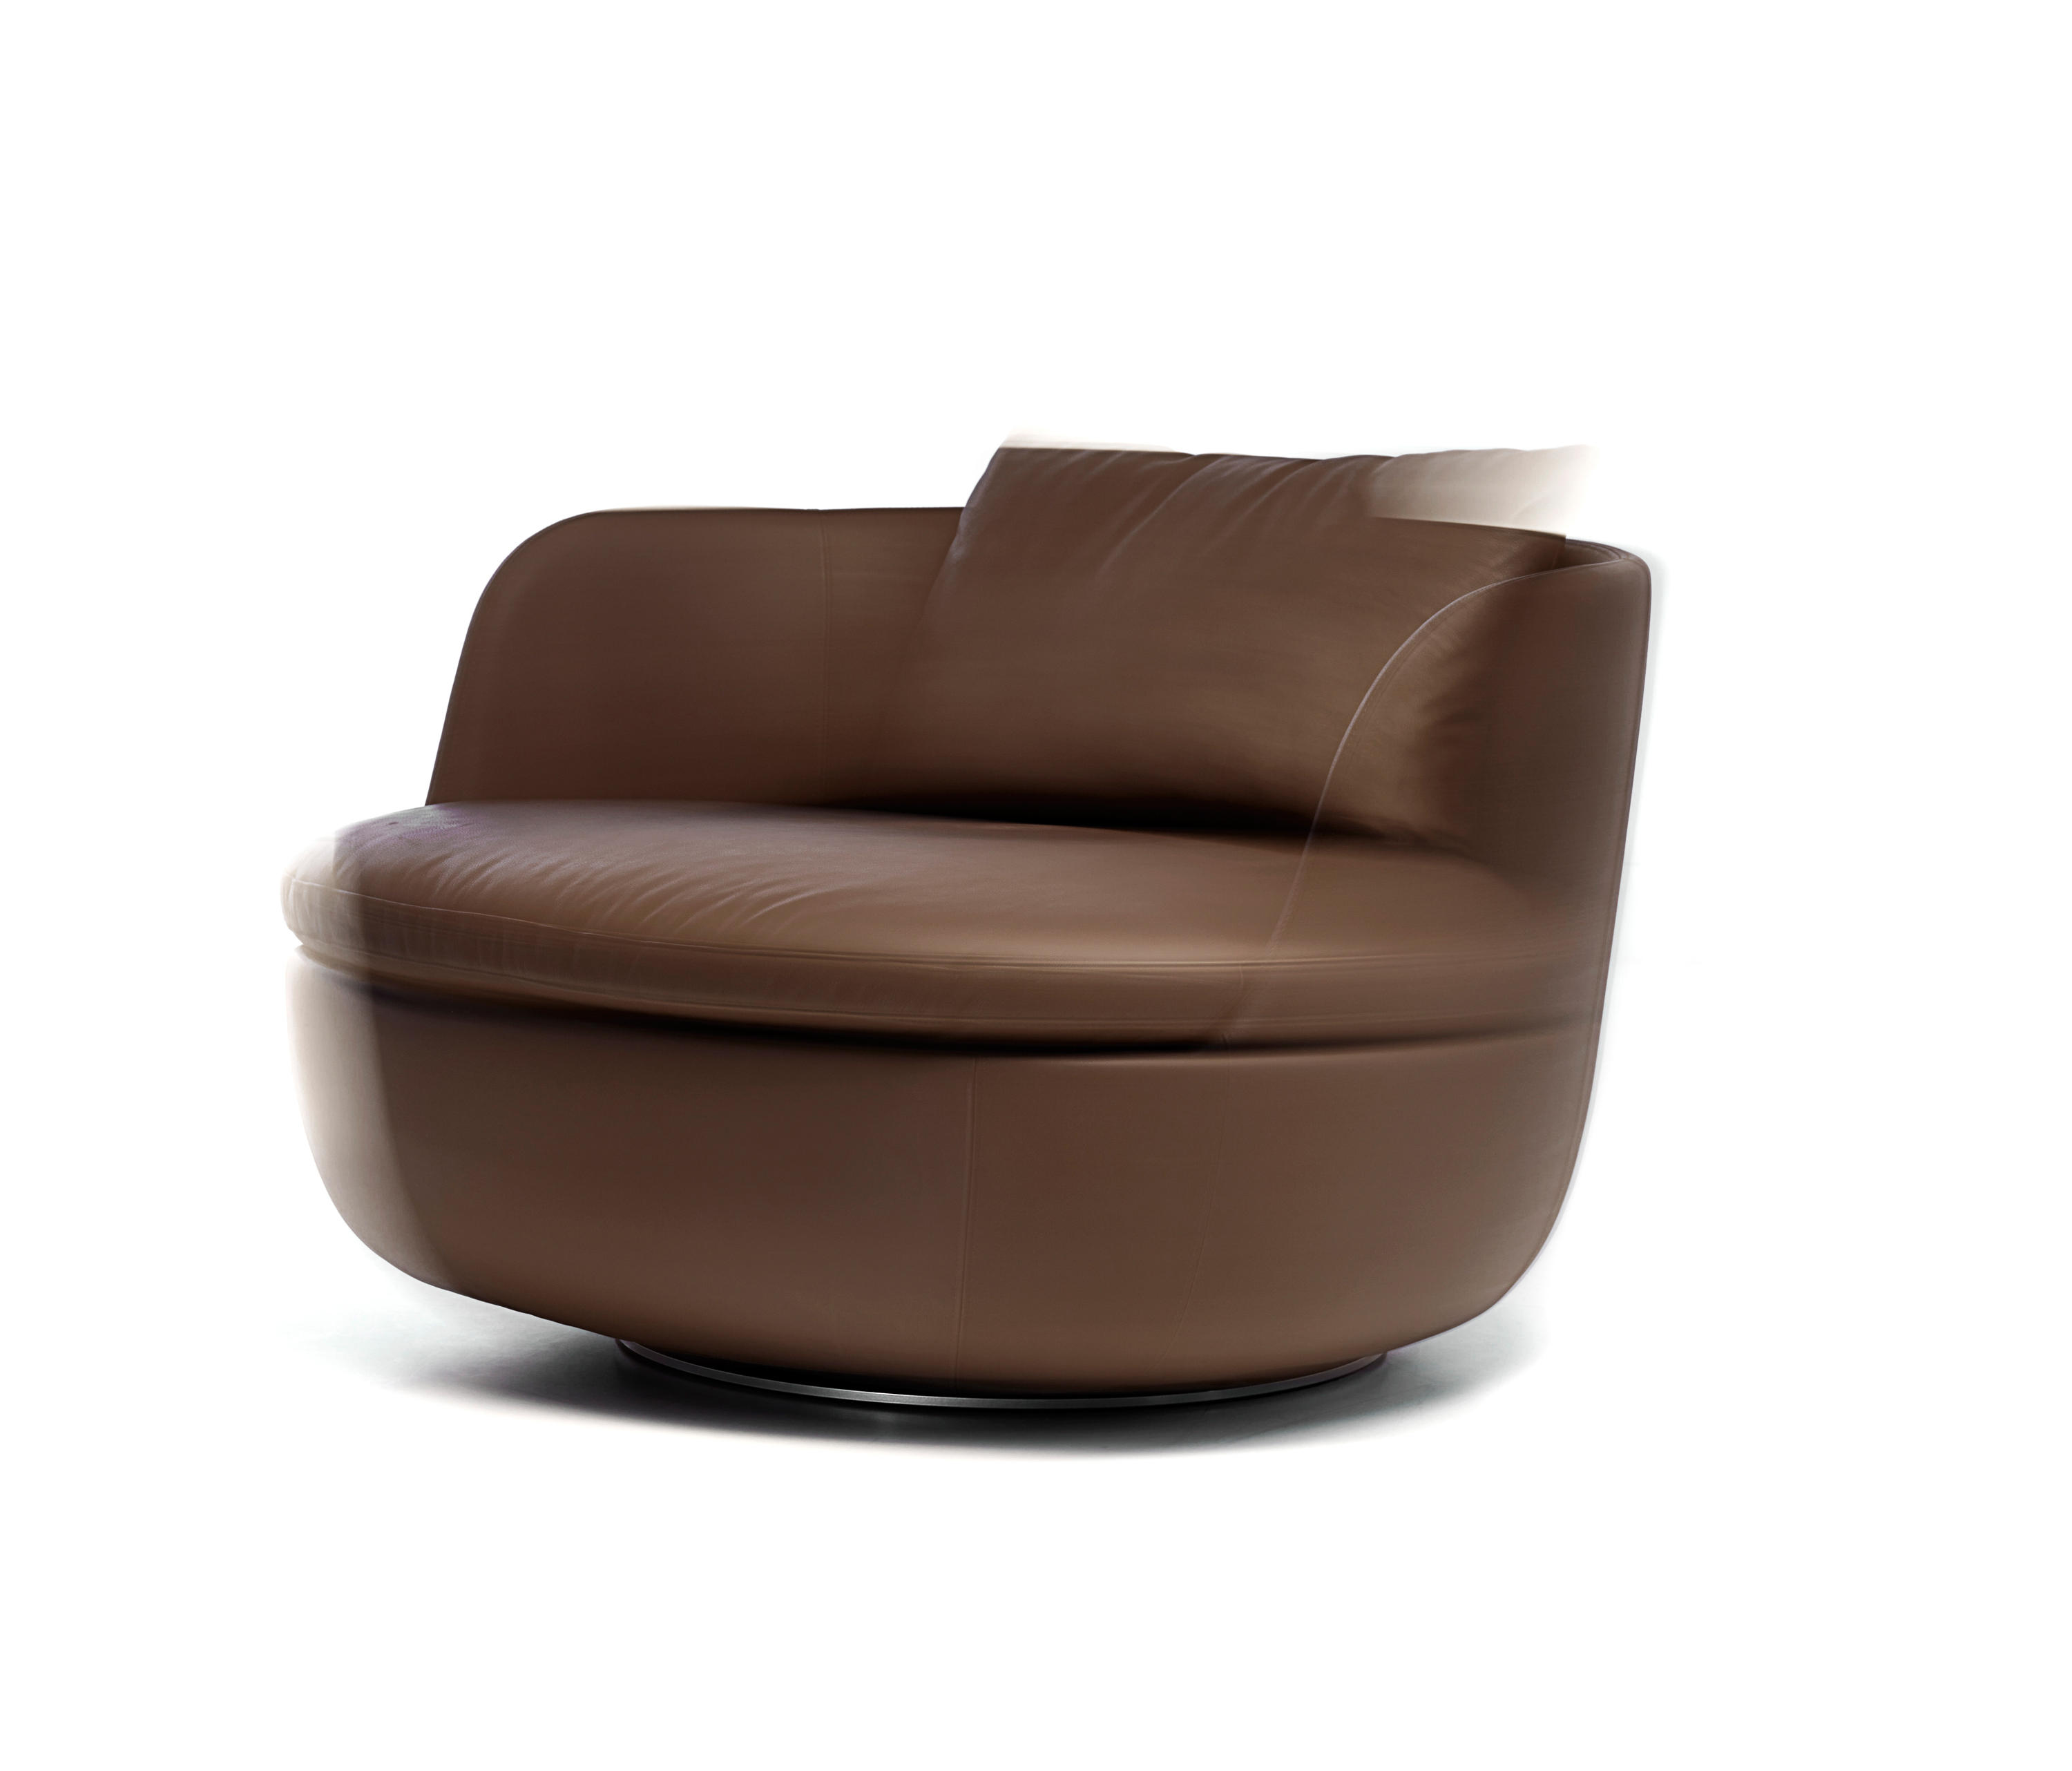 BART SWIVEL ARMCHAIR Lounge Chairs From Moooi Architonic